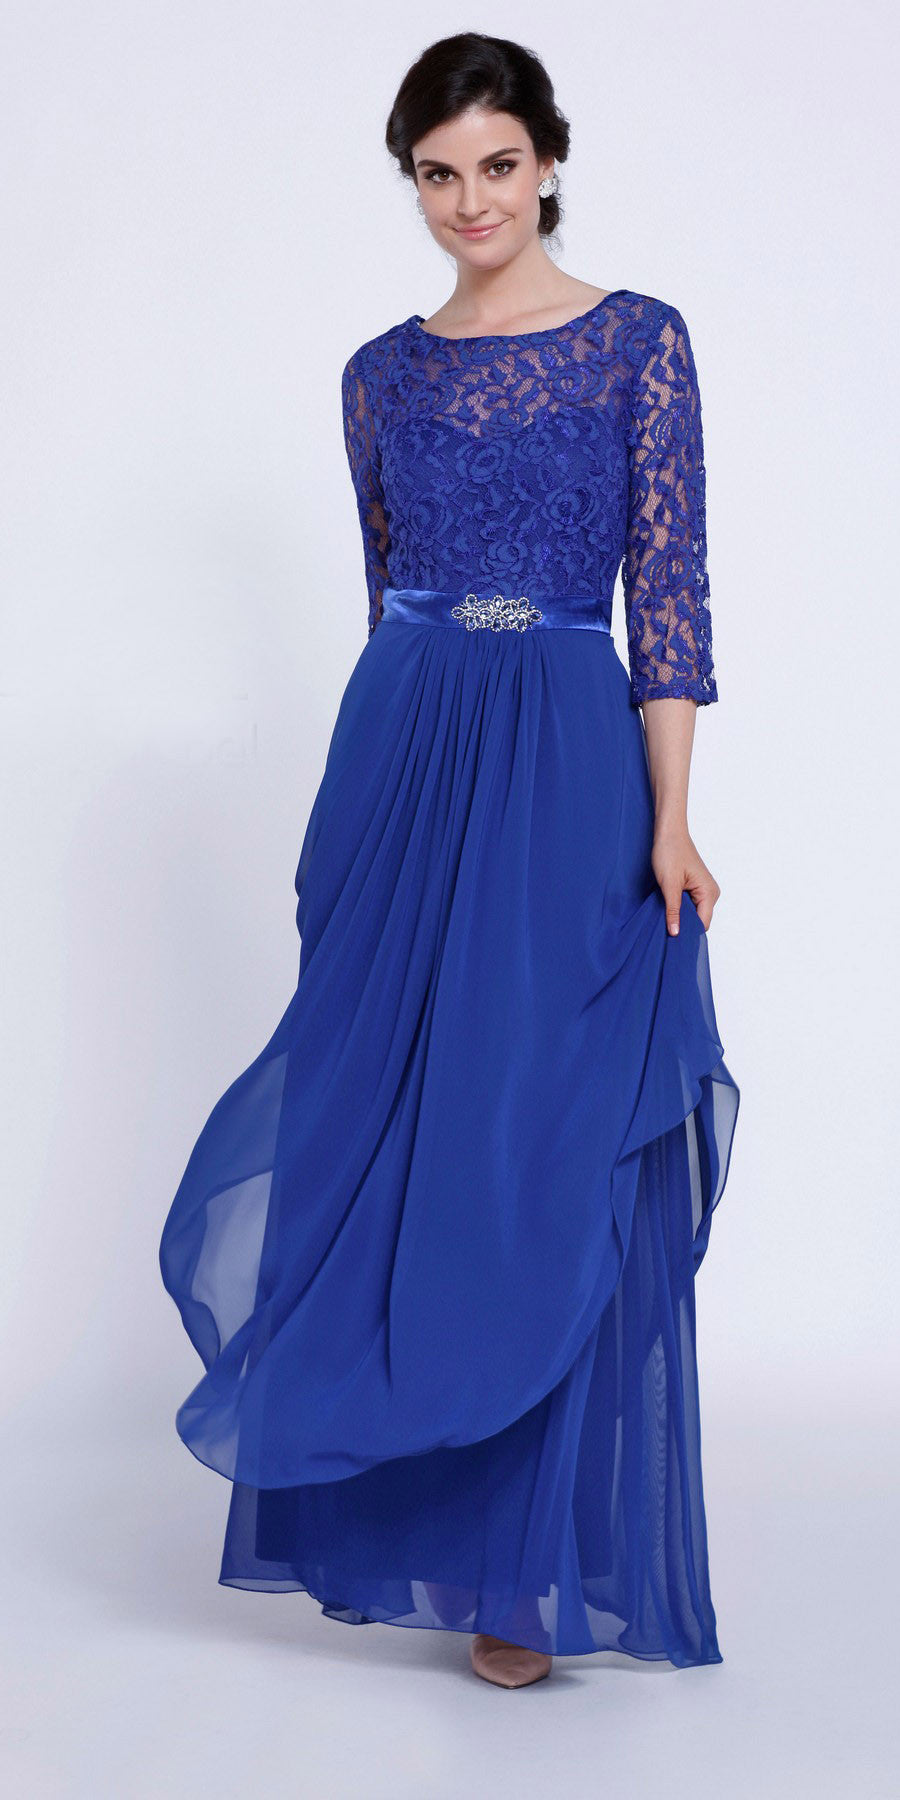 Mid Length Lace Sleeves Sapphire Dress Chiffon Skirt Long